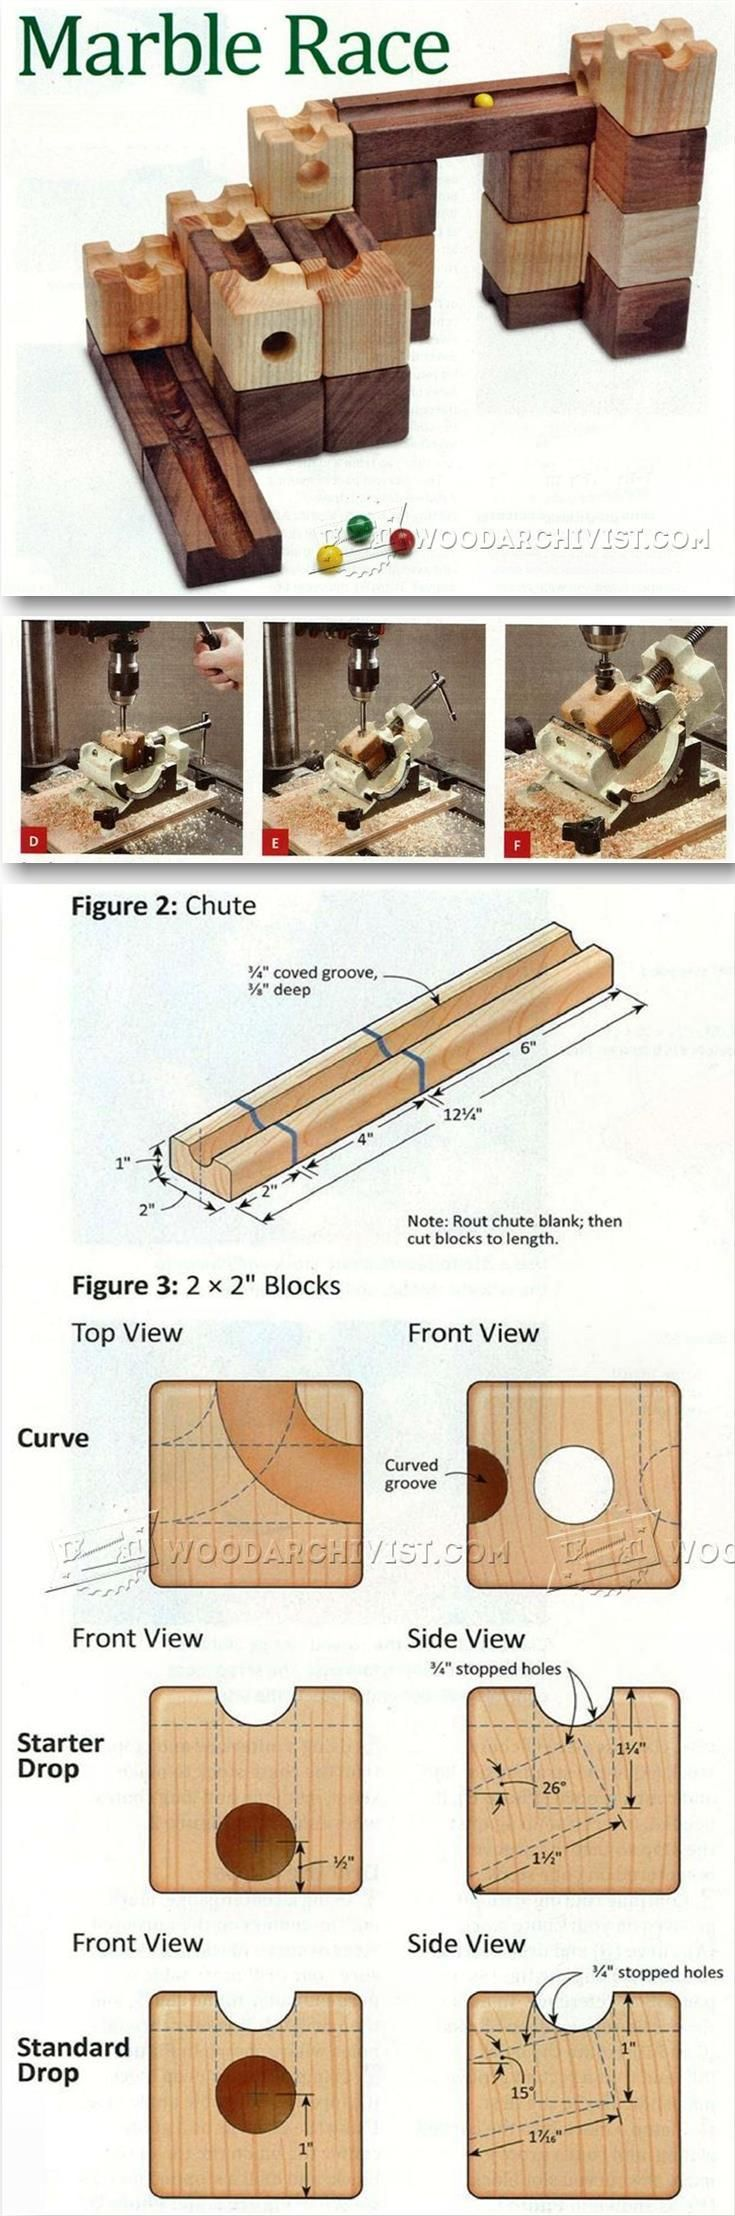 DIY Marble Race - Wooden Toy Plans and Projects | WoodArchivist.com